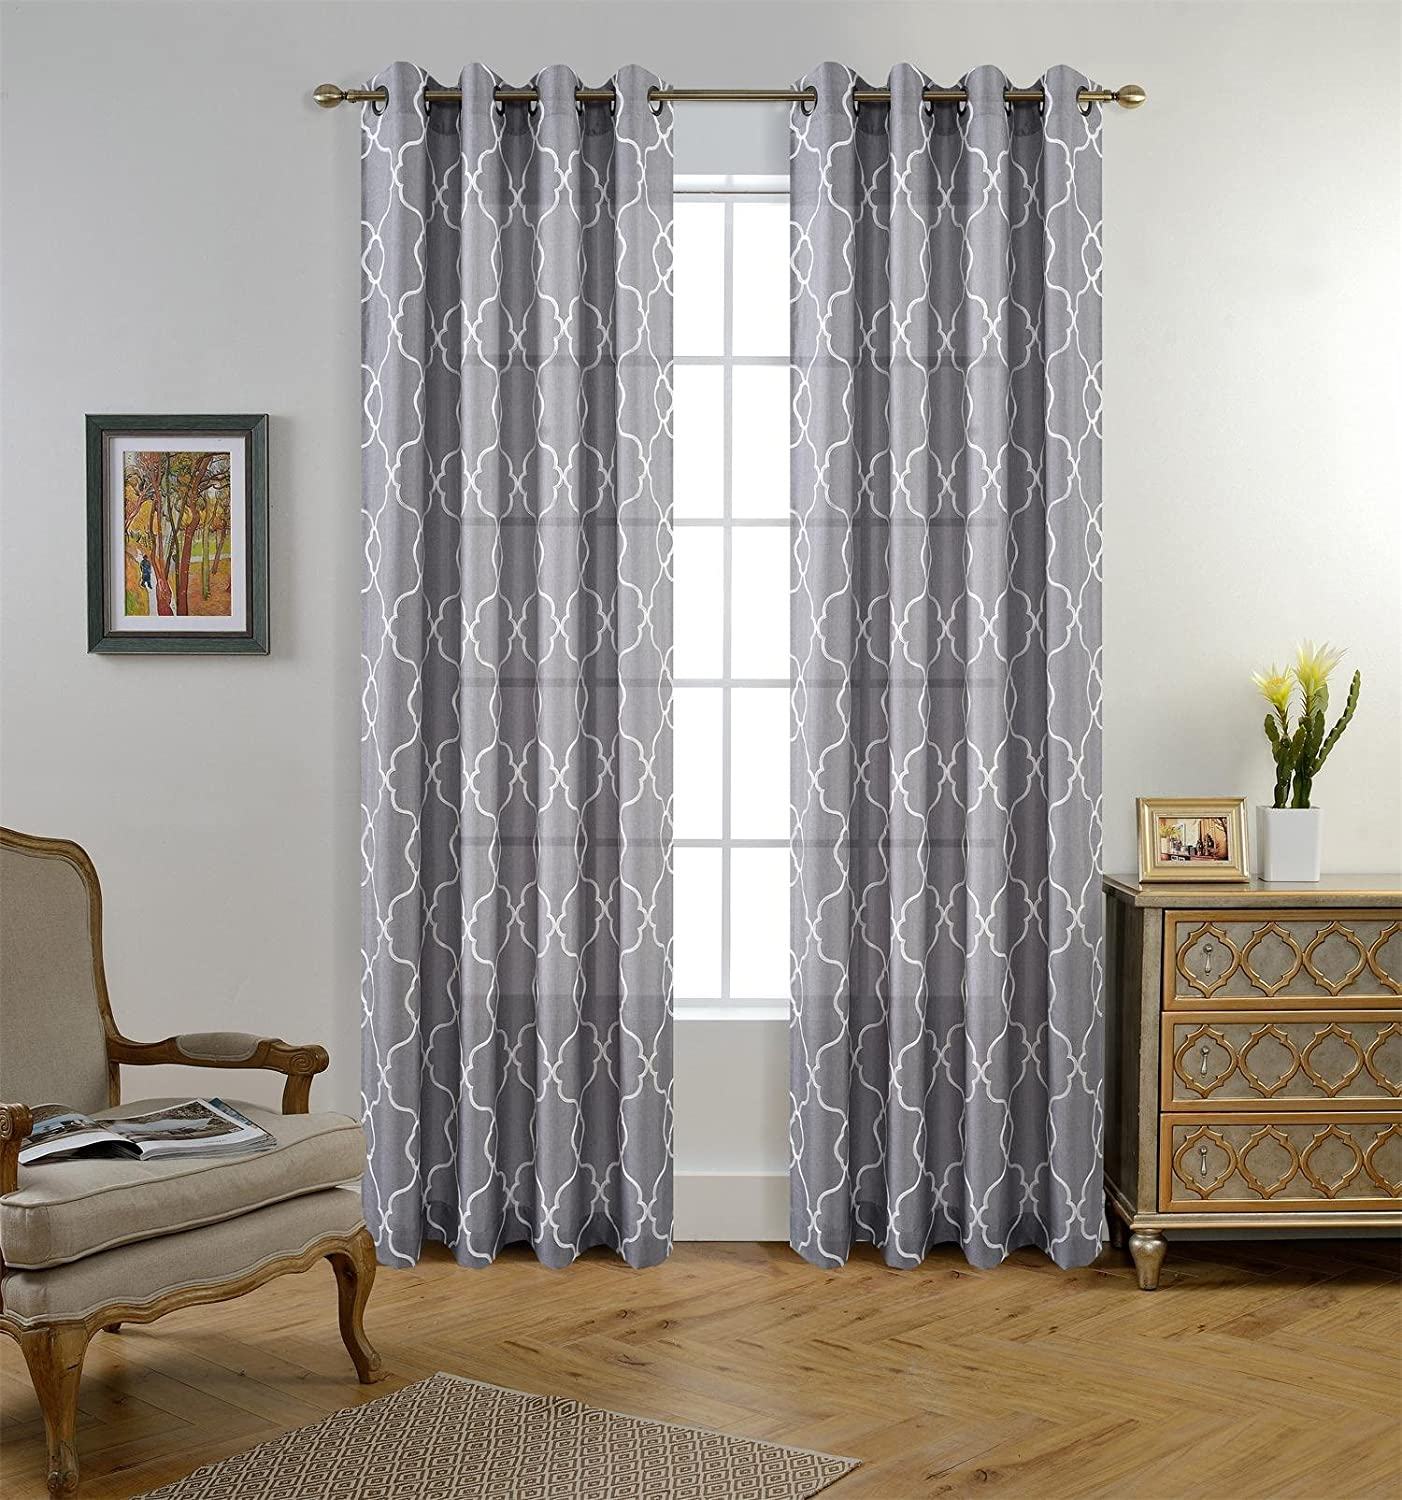 Miuco Moroccan Embroidered Semi Sheer Curtains Faux Linen Grommet Curtain Panels for Bedroom